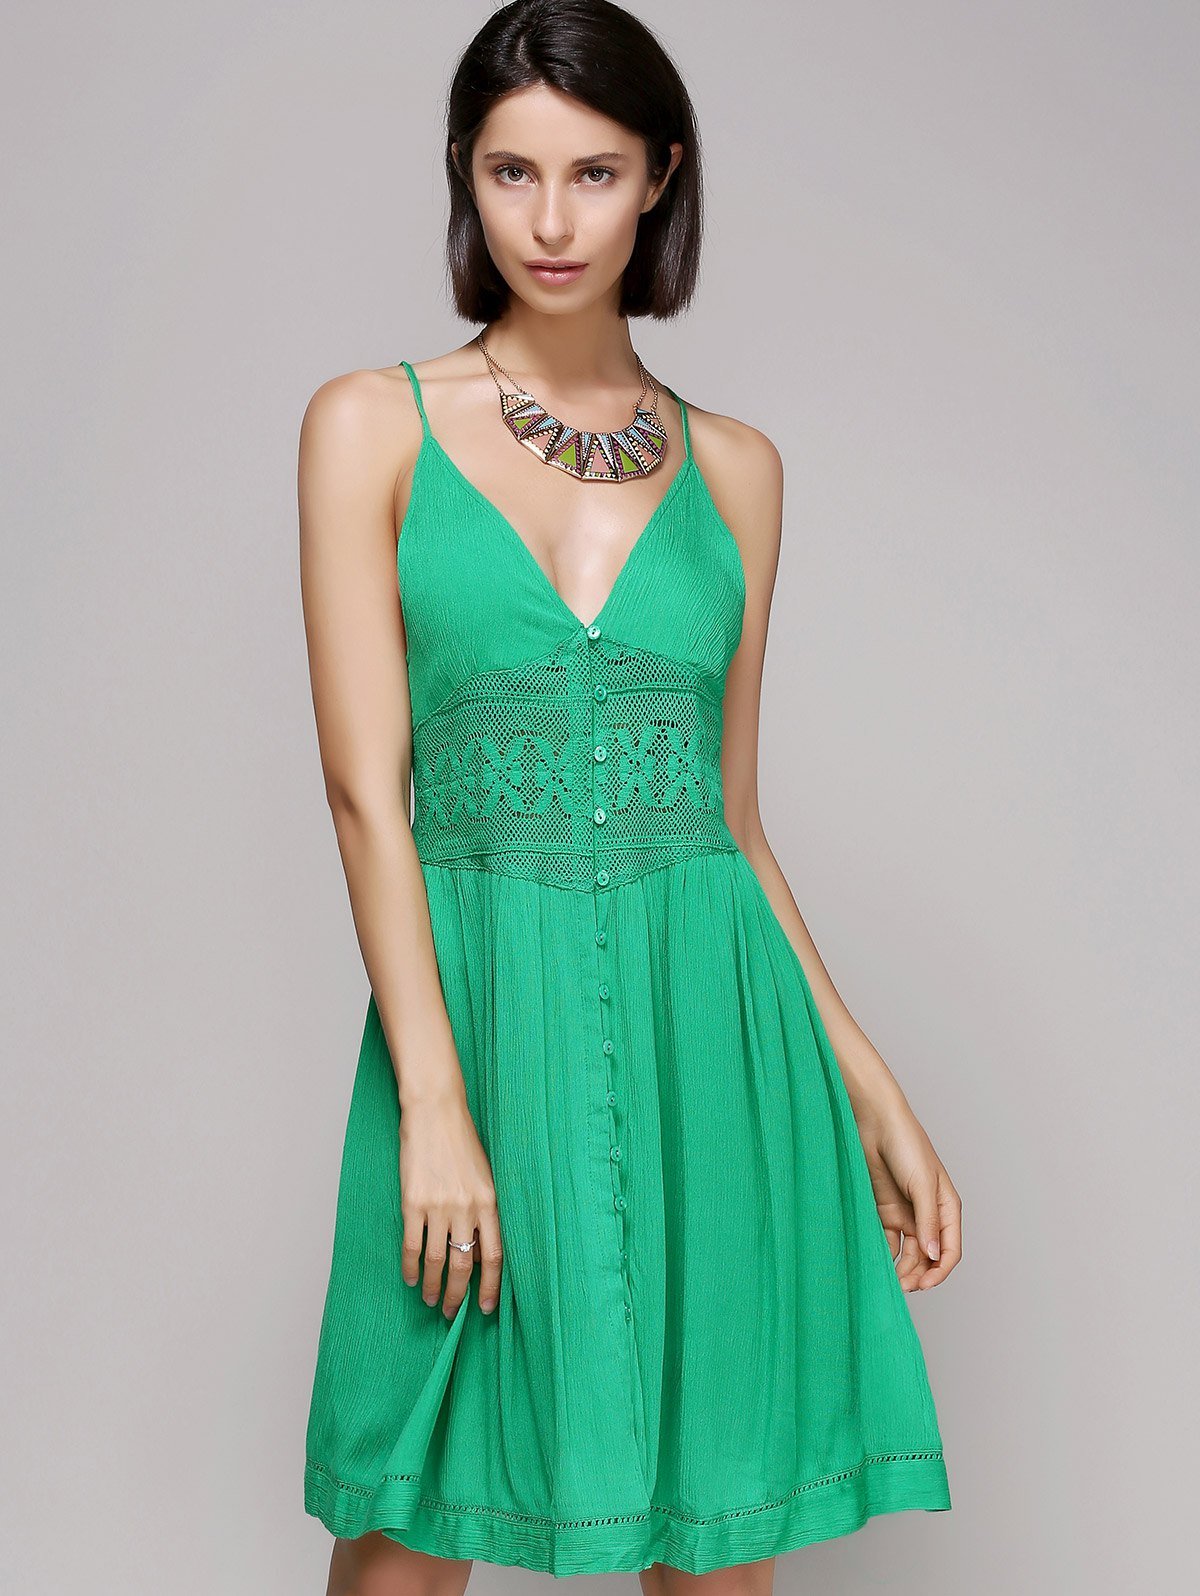 Stylish Laced Plunging Neck Sleeveless Dress For Women